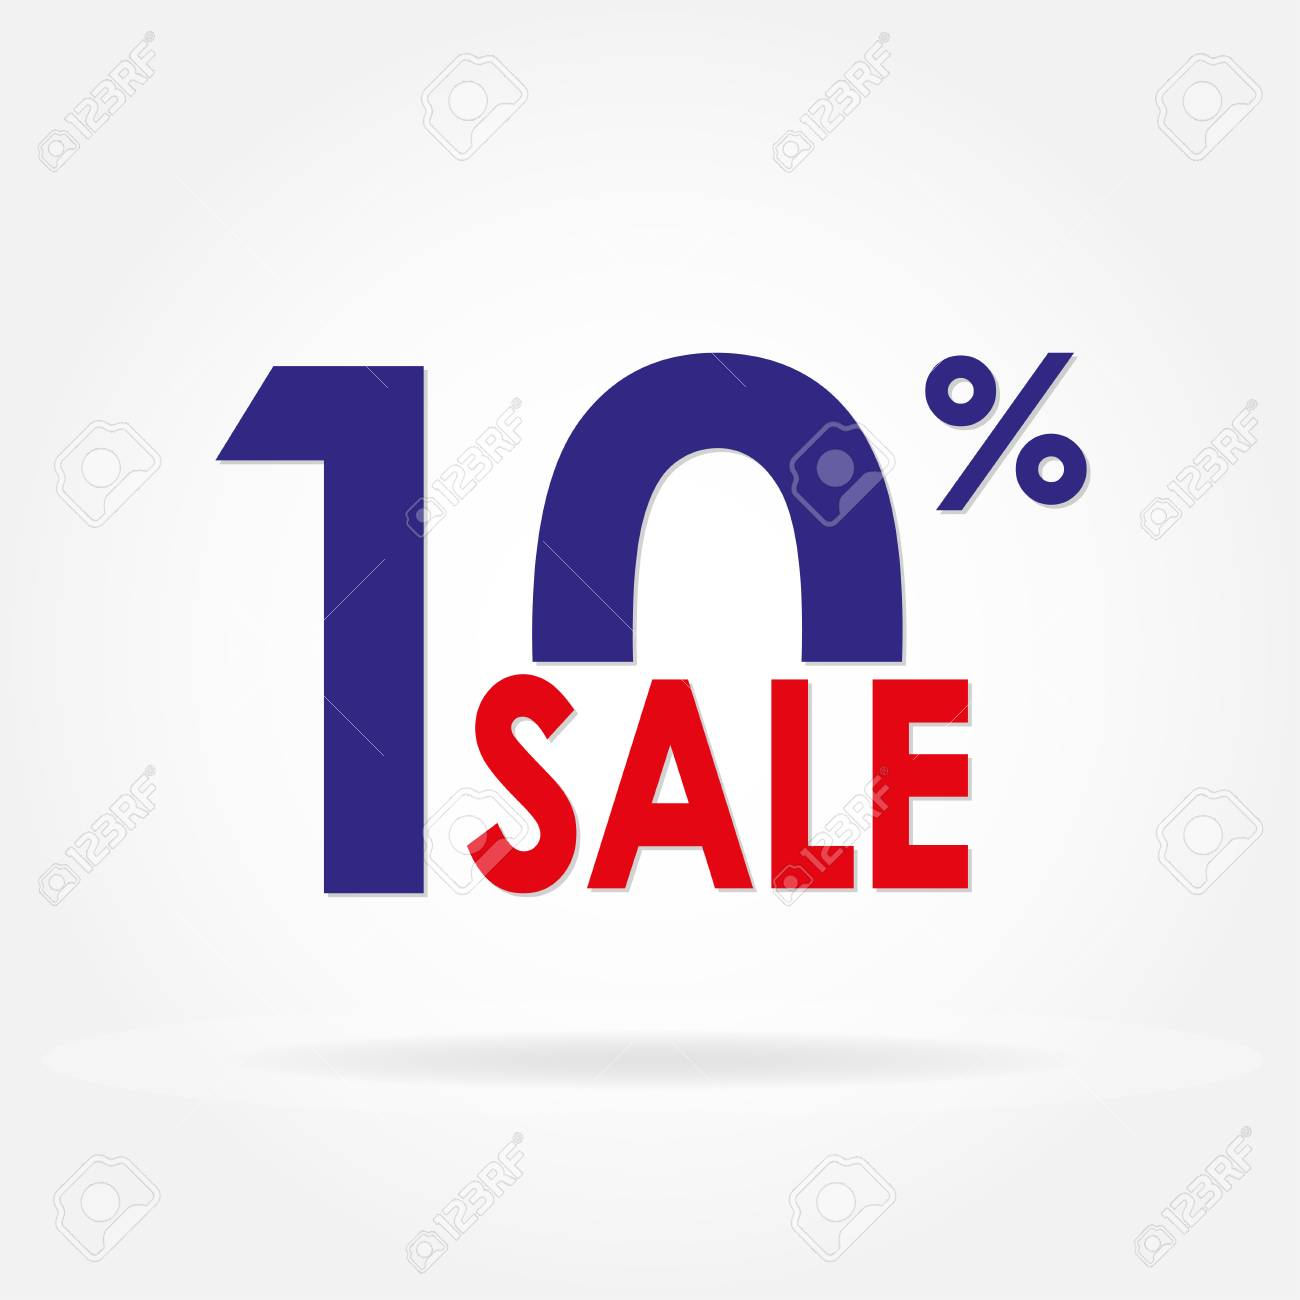 sale 10 and discount price sign or icon sales design template